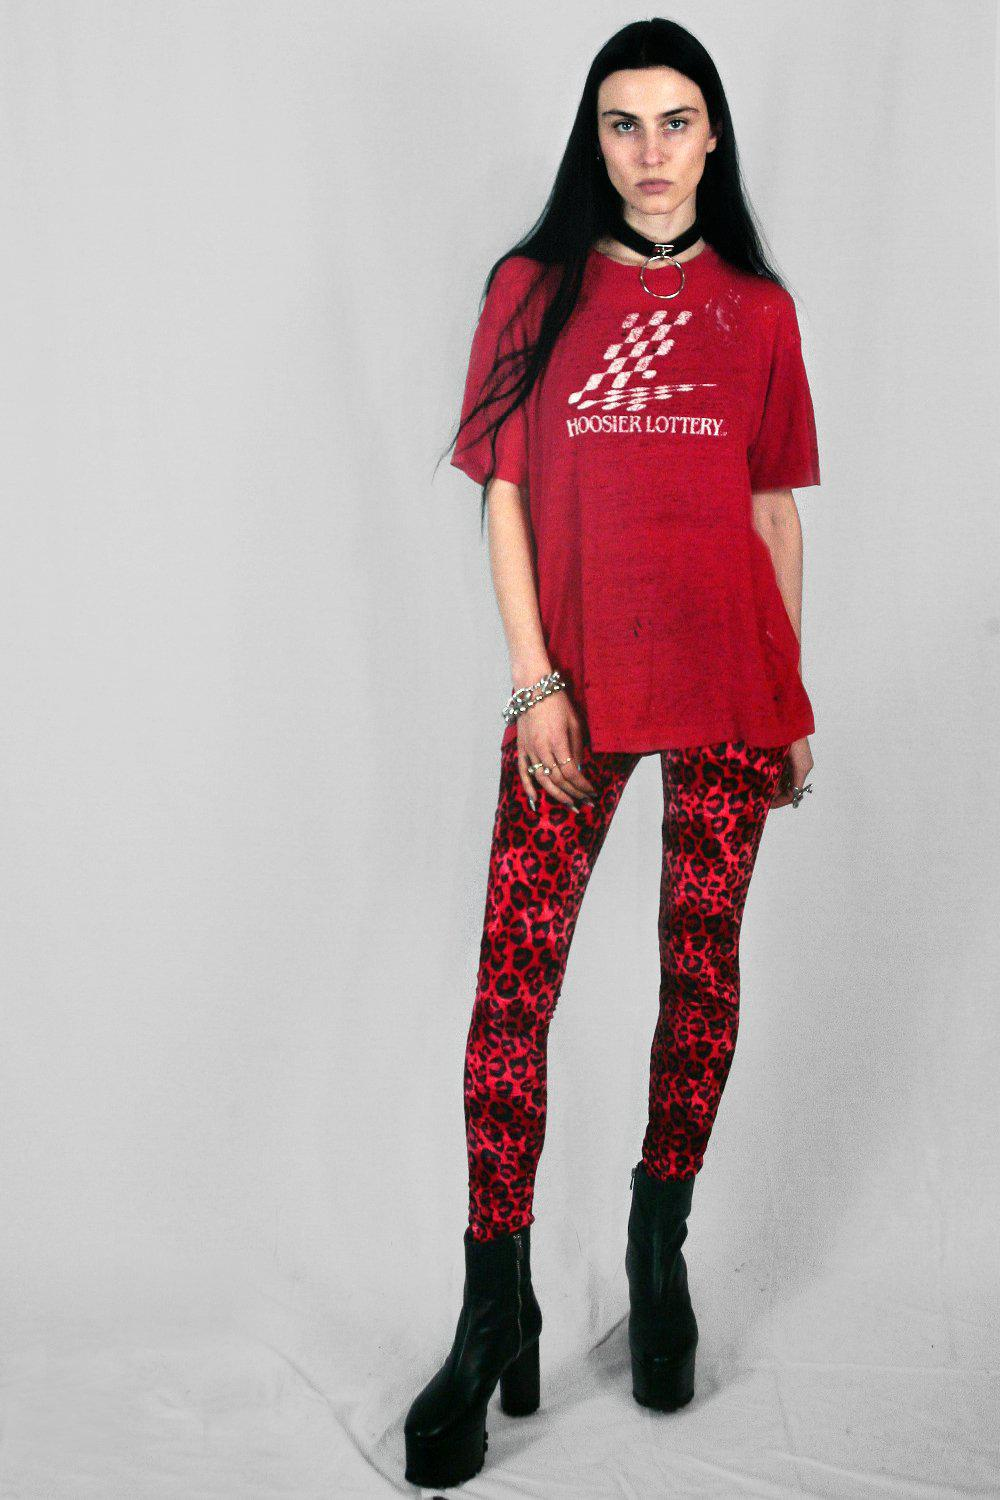 Red Cheetah Velvet Grommet Pants